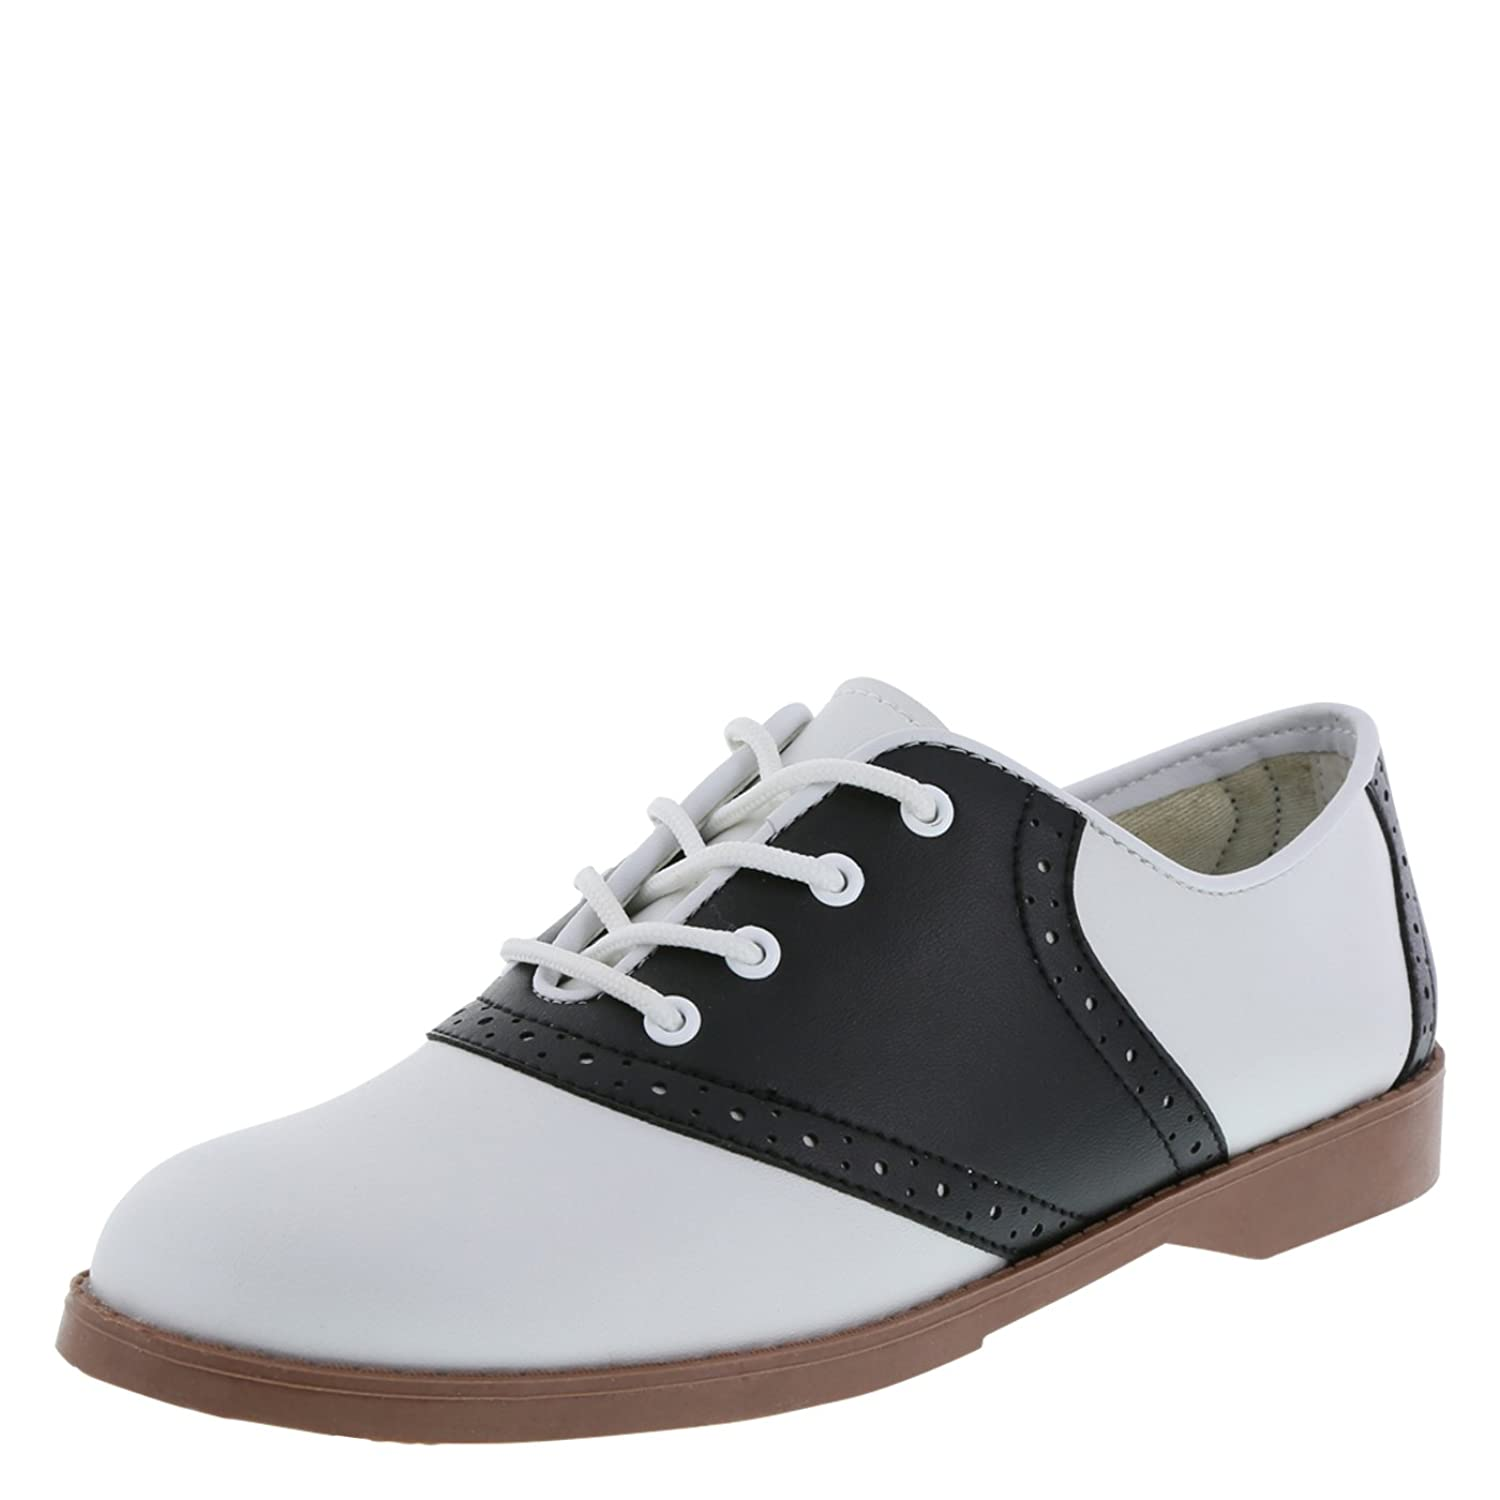 Black and White Women's Oxfords Lace-up Flats Vintage Shoes. Product was successfully added to your shopping cart. Go to cart page Continue. Black and White Women's Oxfords Lace-up Flats Vintage Shoes. $ (In stock) Add to Cart. Black and White Women's Oxfords Lace-up Flats Vintage Shoes. 2 0.